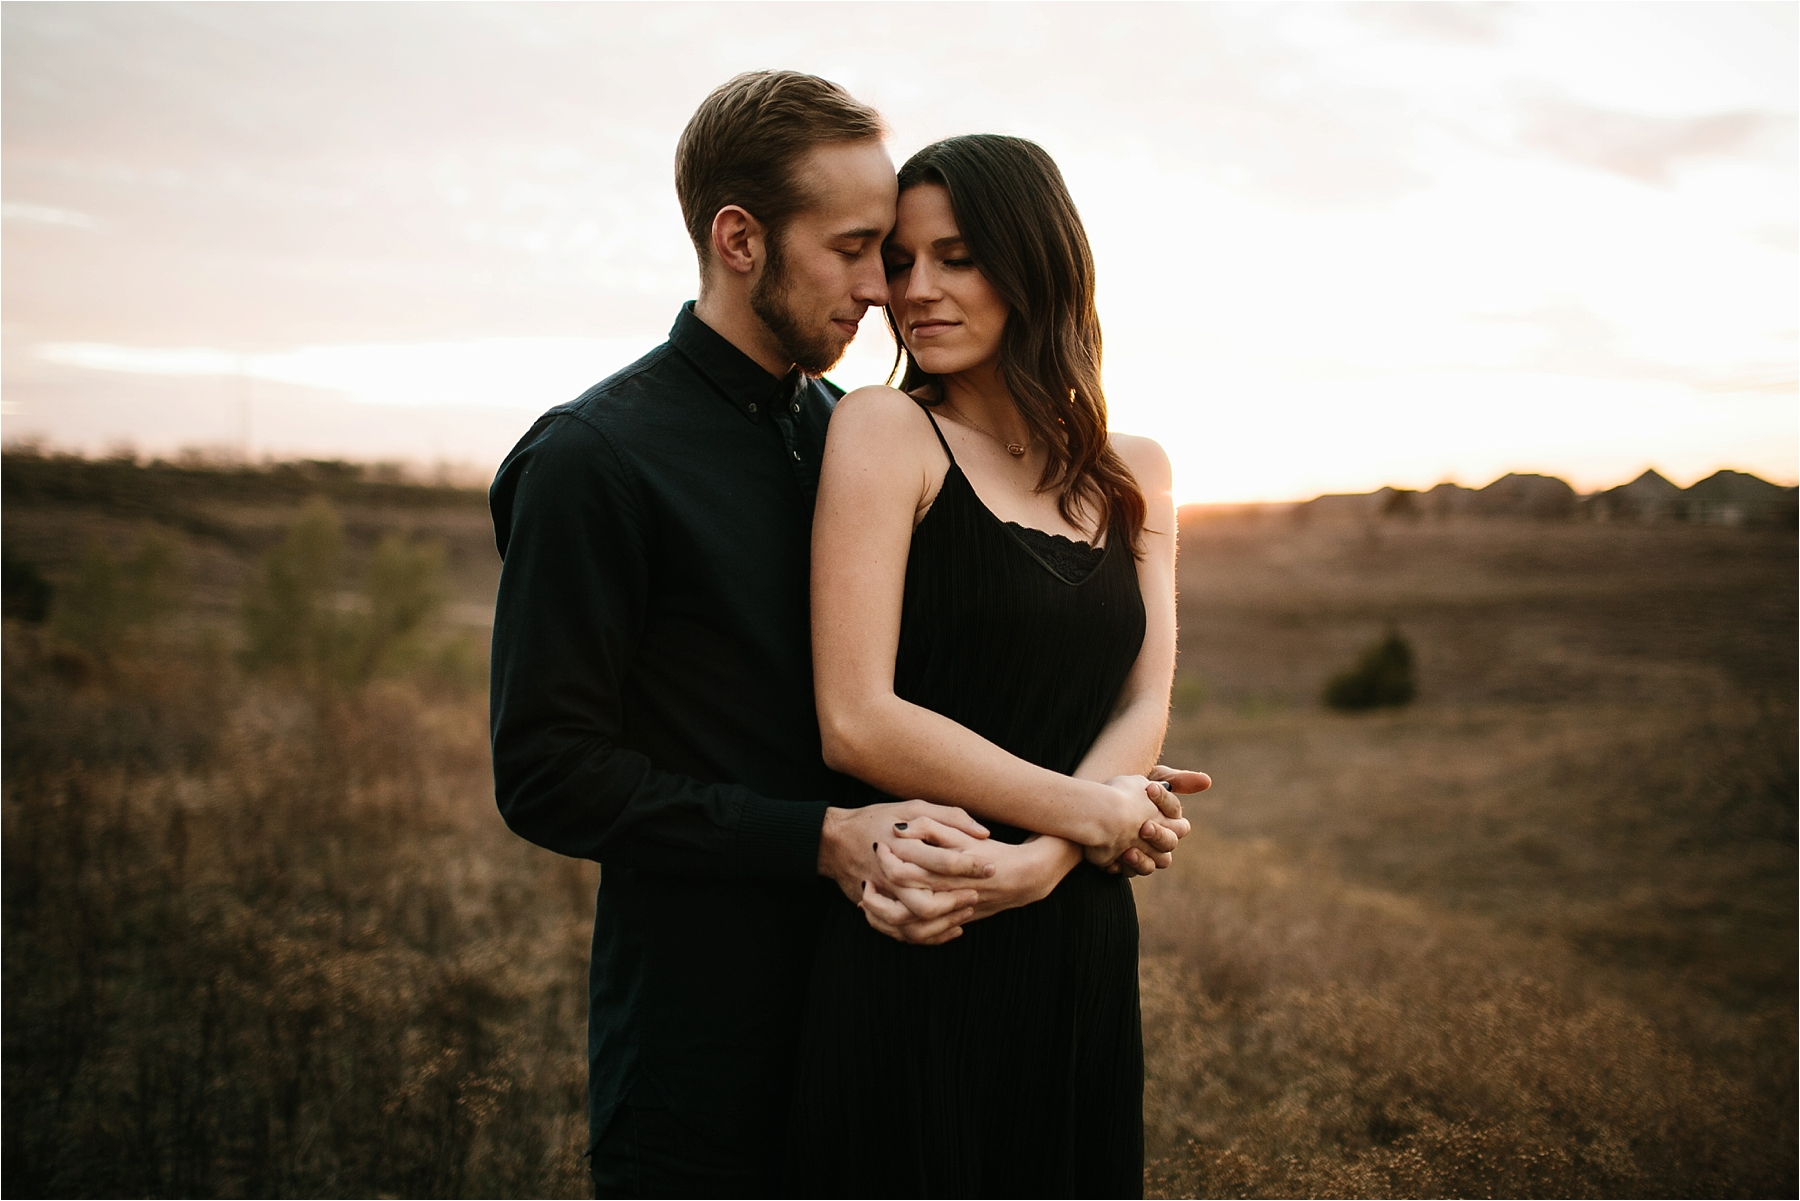 Trey + Phoebe __ a playful, intimate engagement session with dark_neutral outfit inspiration by North Texas Wedding Photographer Rachel Meagan Photography __ 56